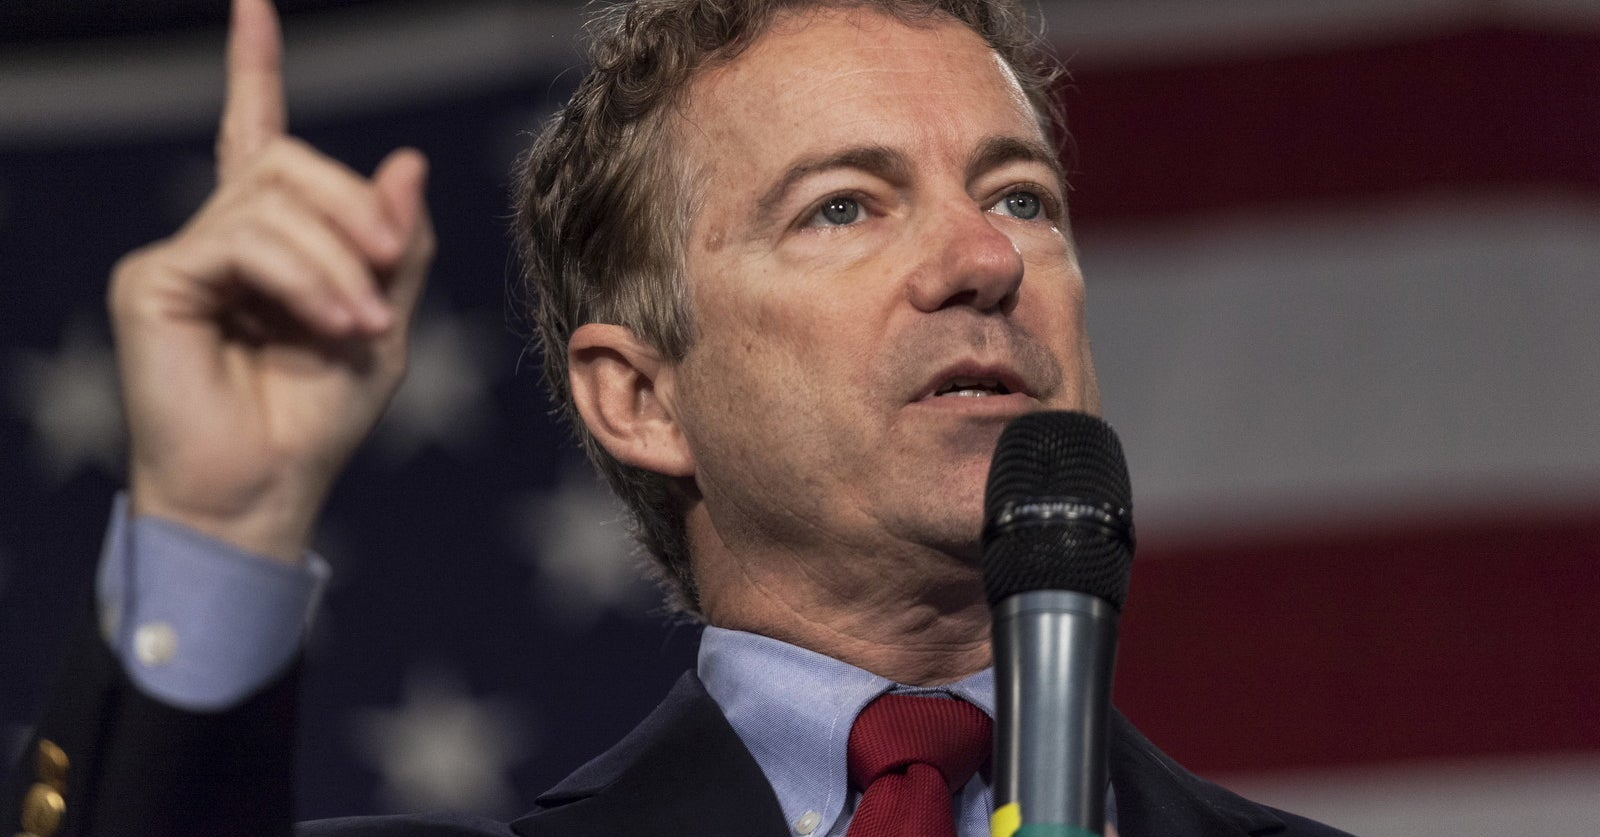 Rand Paul Just Failed To Get The Senate To Vote On A War Authorization